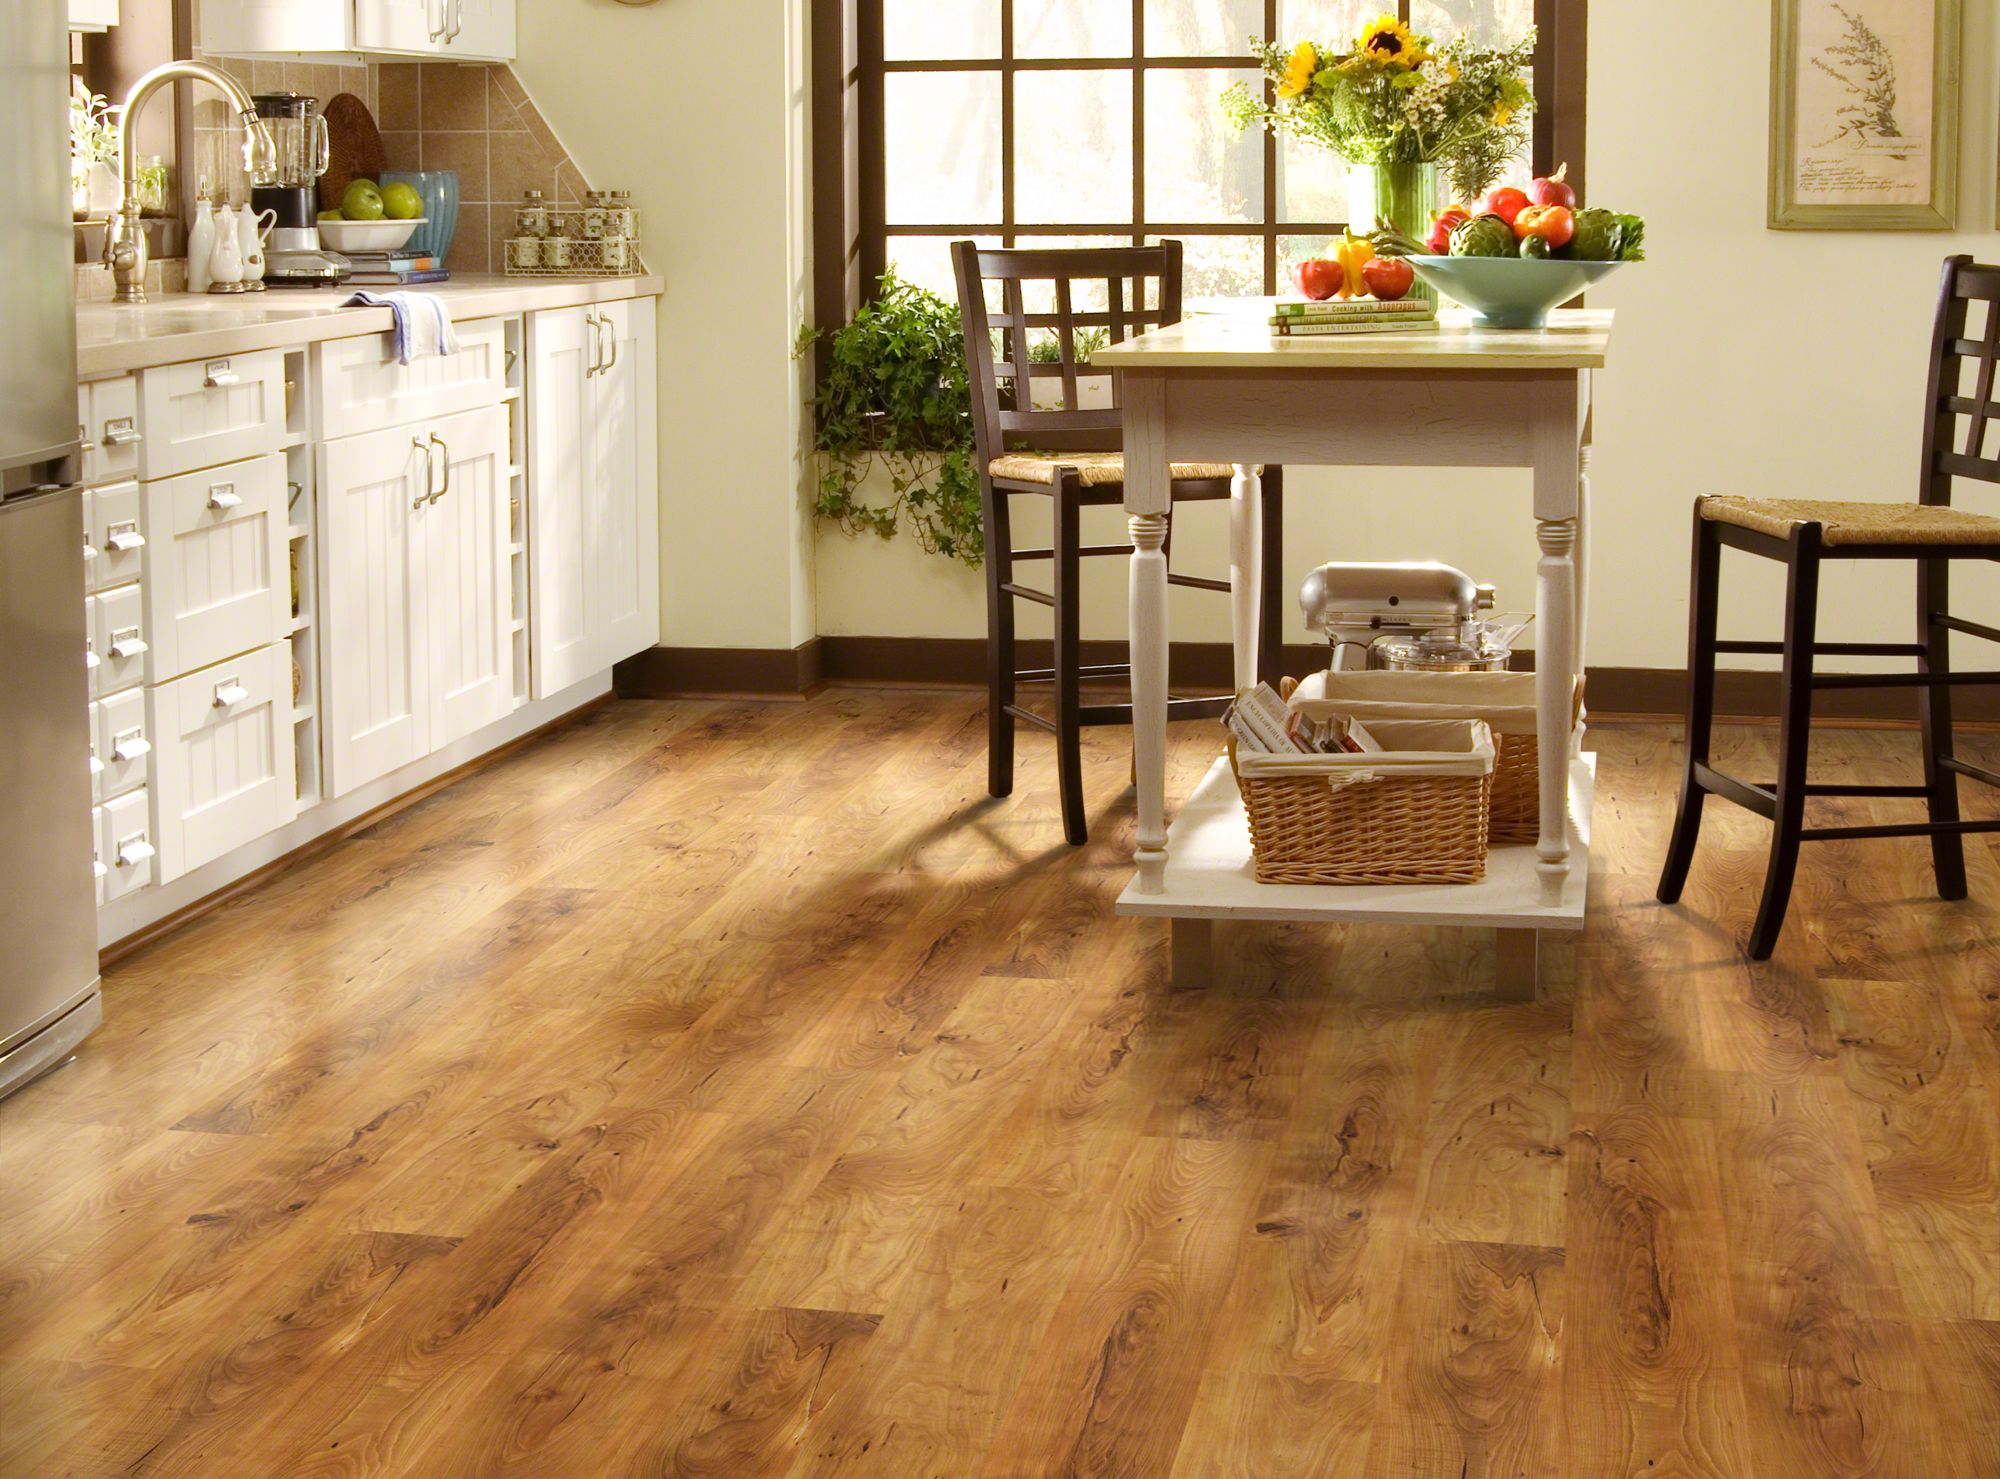 Excellent wood laminate flooring ... laminate wood install floor. view laminate installation information.  underlayment options rarsgzx